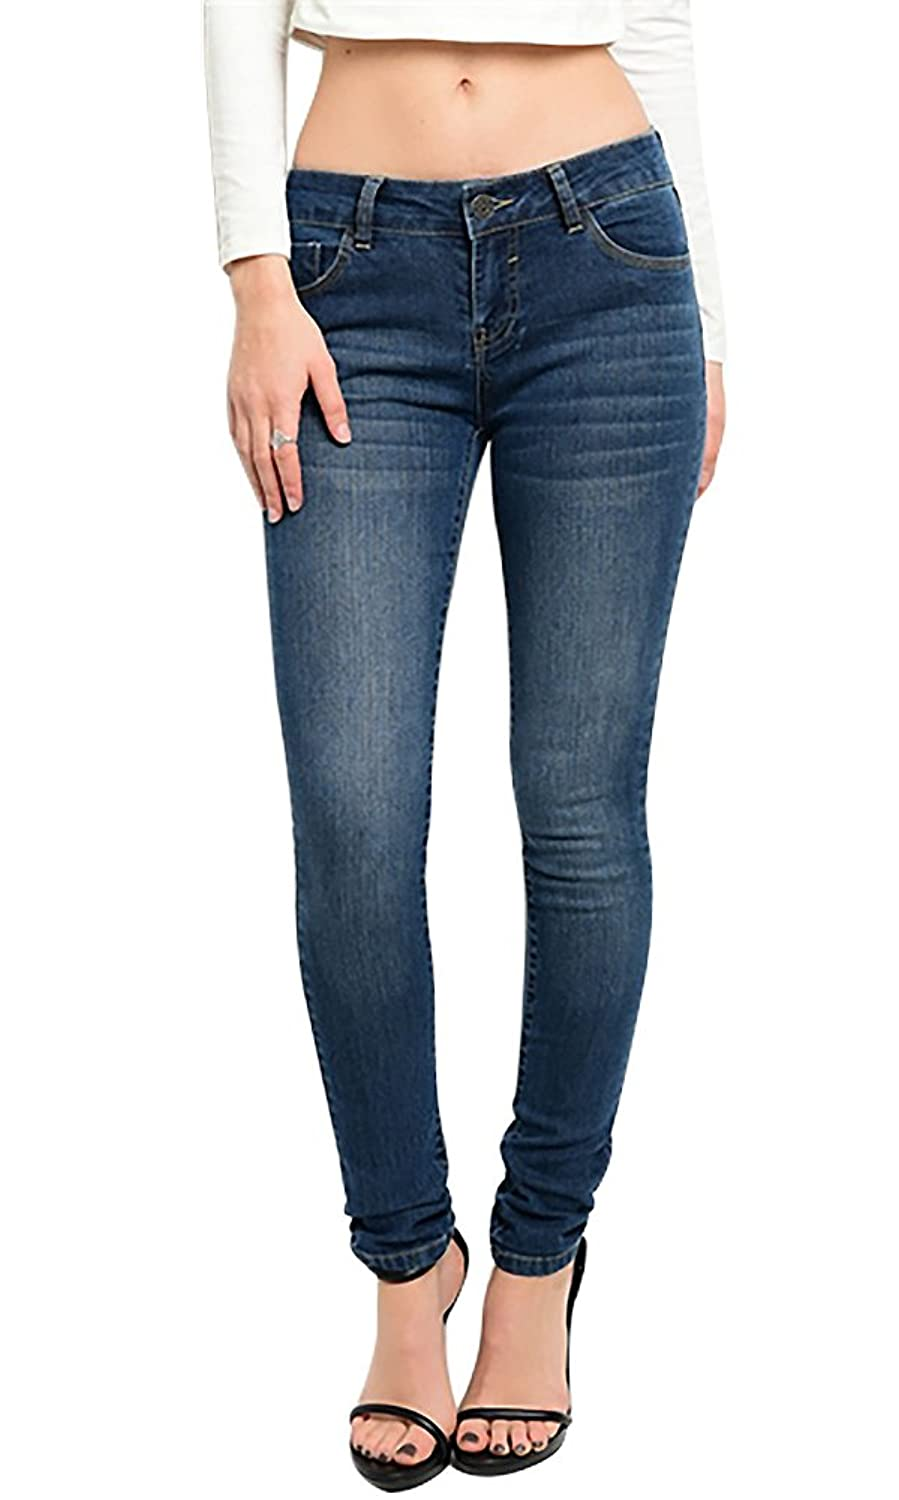 JW Signature Women's Skinny Washed Pants Denim Jeans